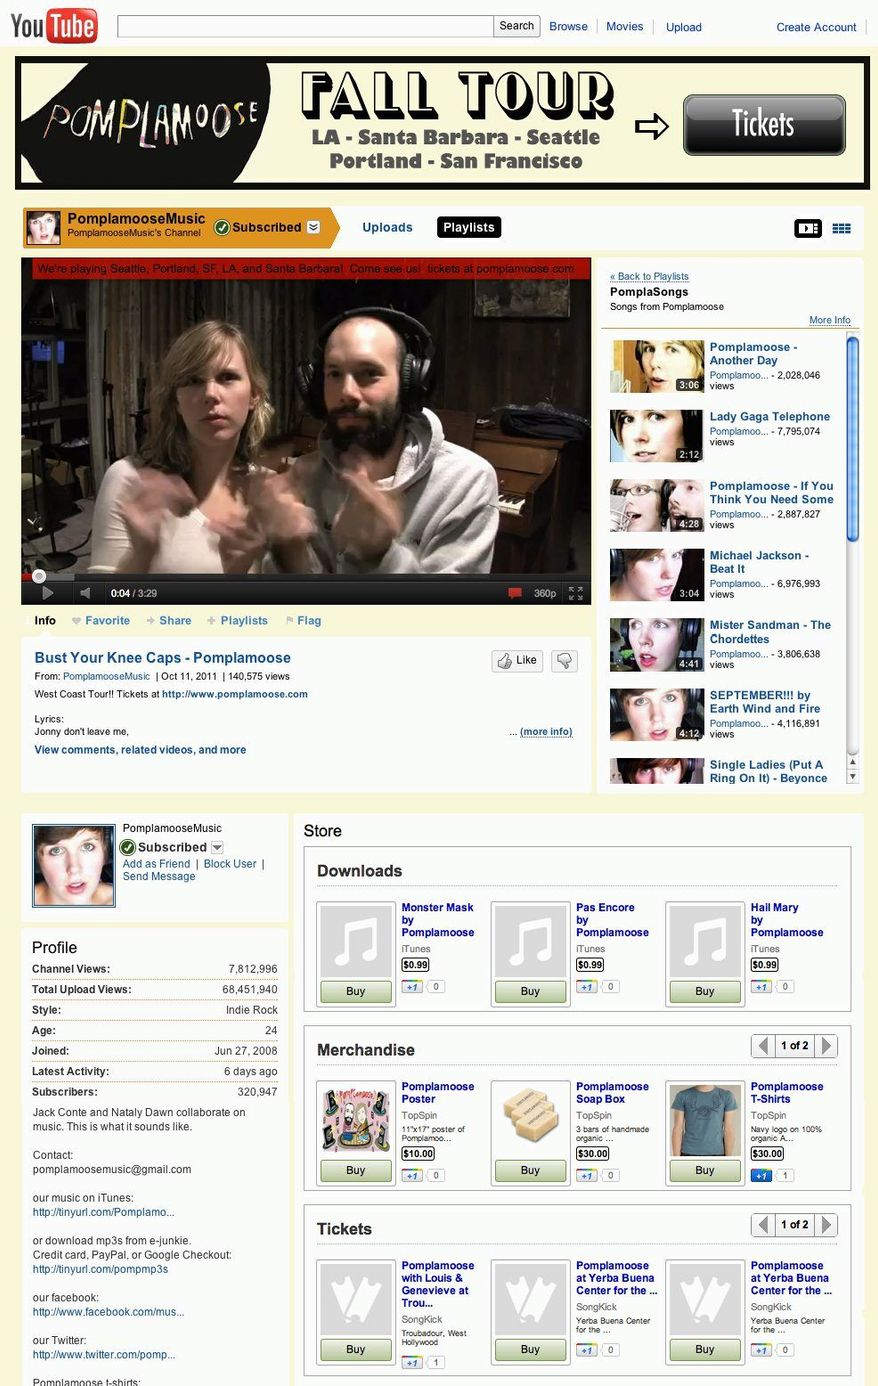 The YouTube channel page for Pomplamoose shows video of the Northern California indie duo performing and offers for sale downloads, T-shirts and concert tickets. (YouTube and Associated Press)